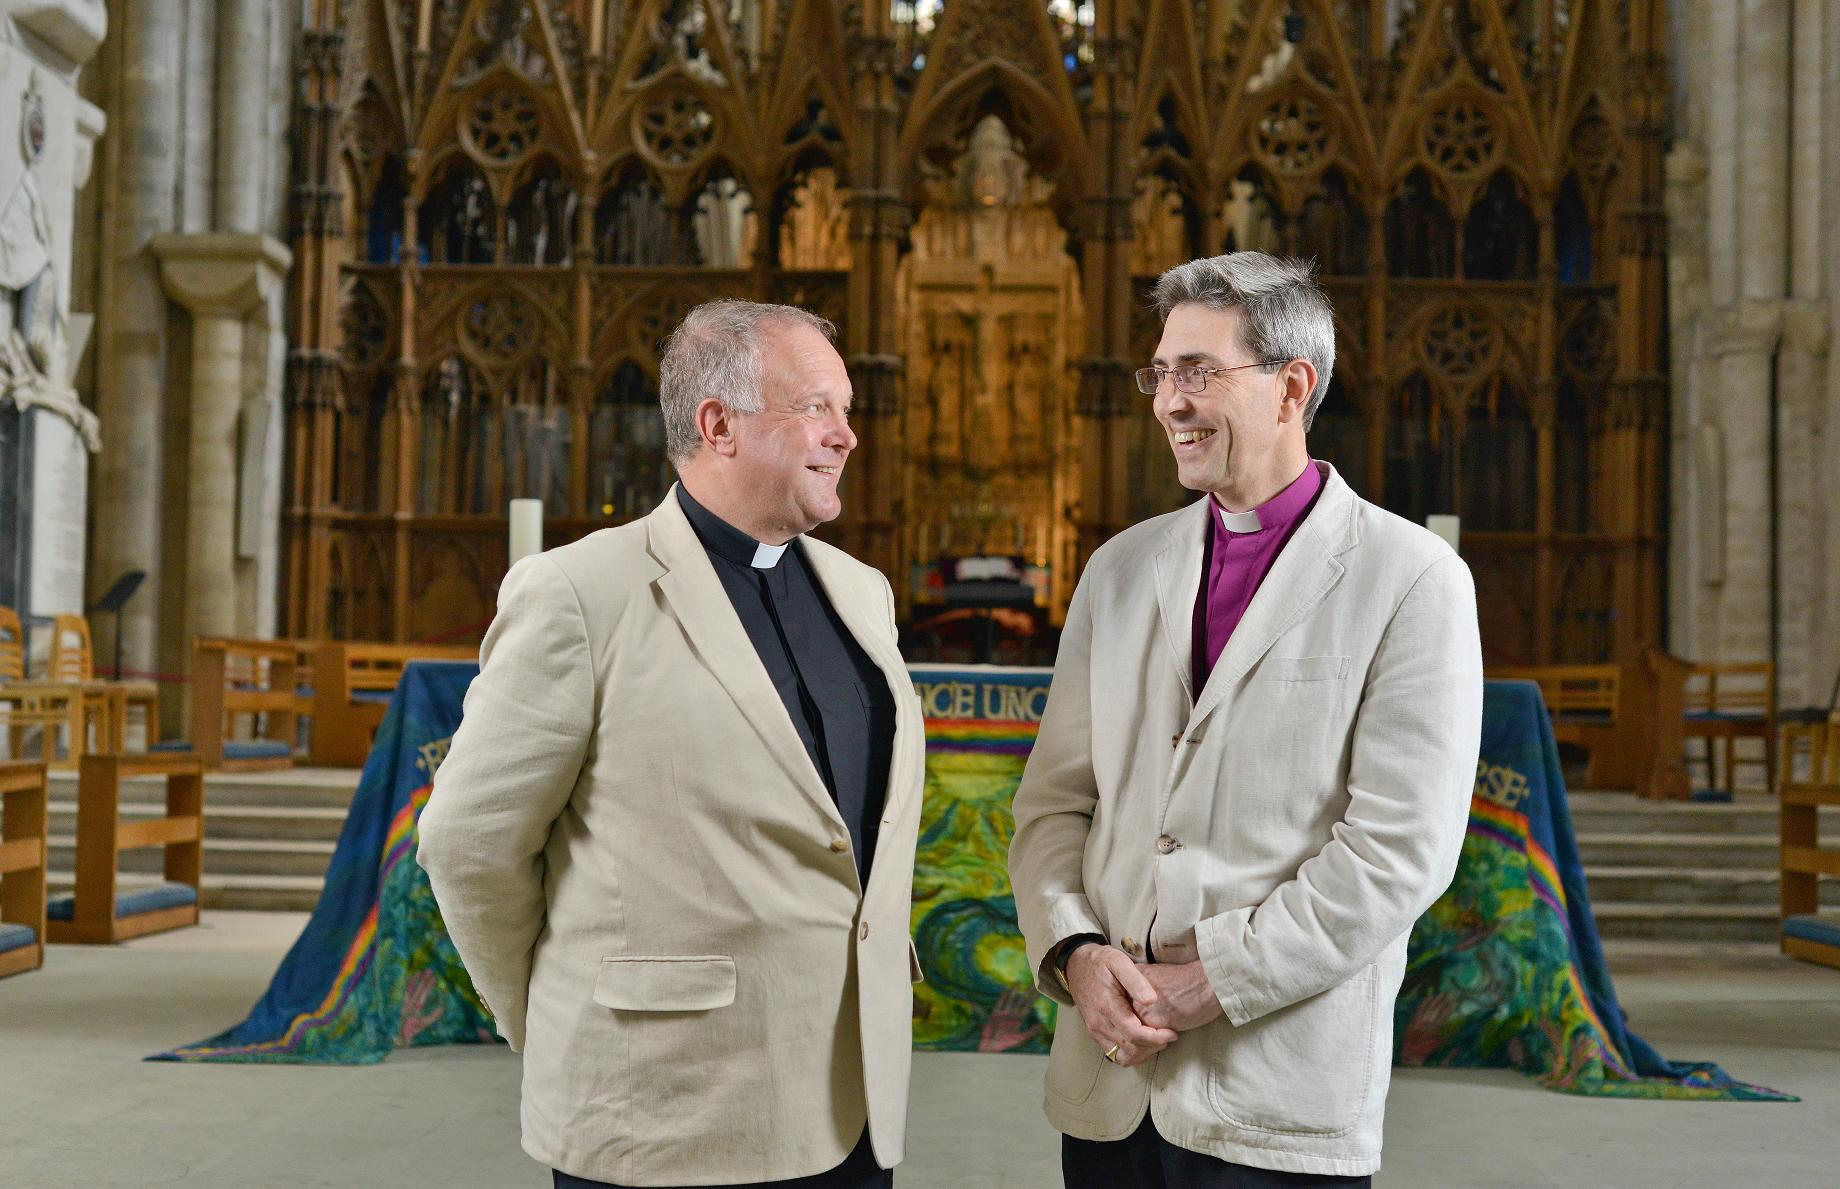 Reverend Canon David Williams with the Right Reverend Tim Dakin, the Bishop of Winchester